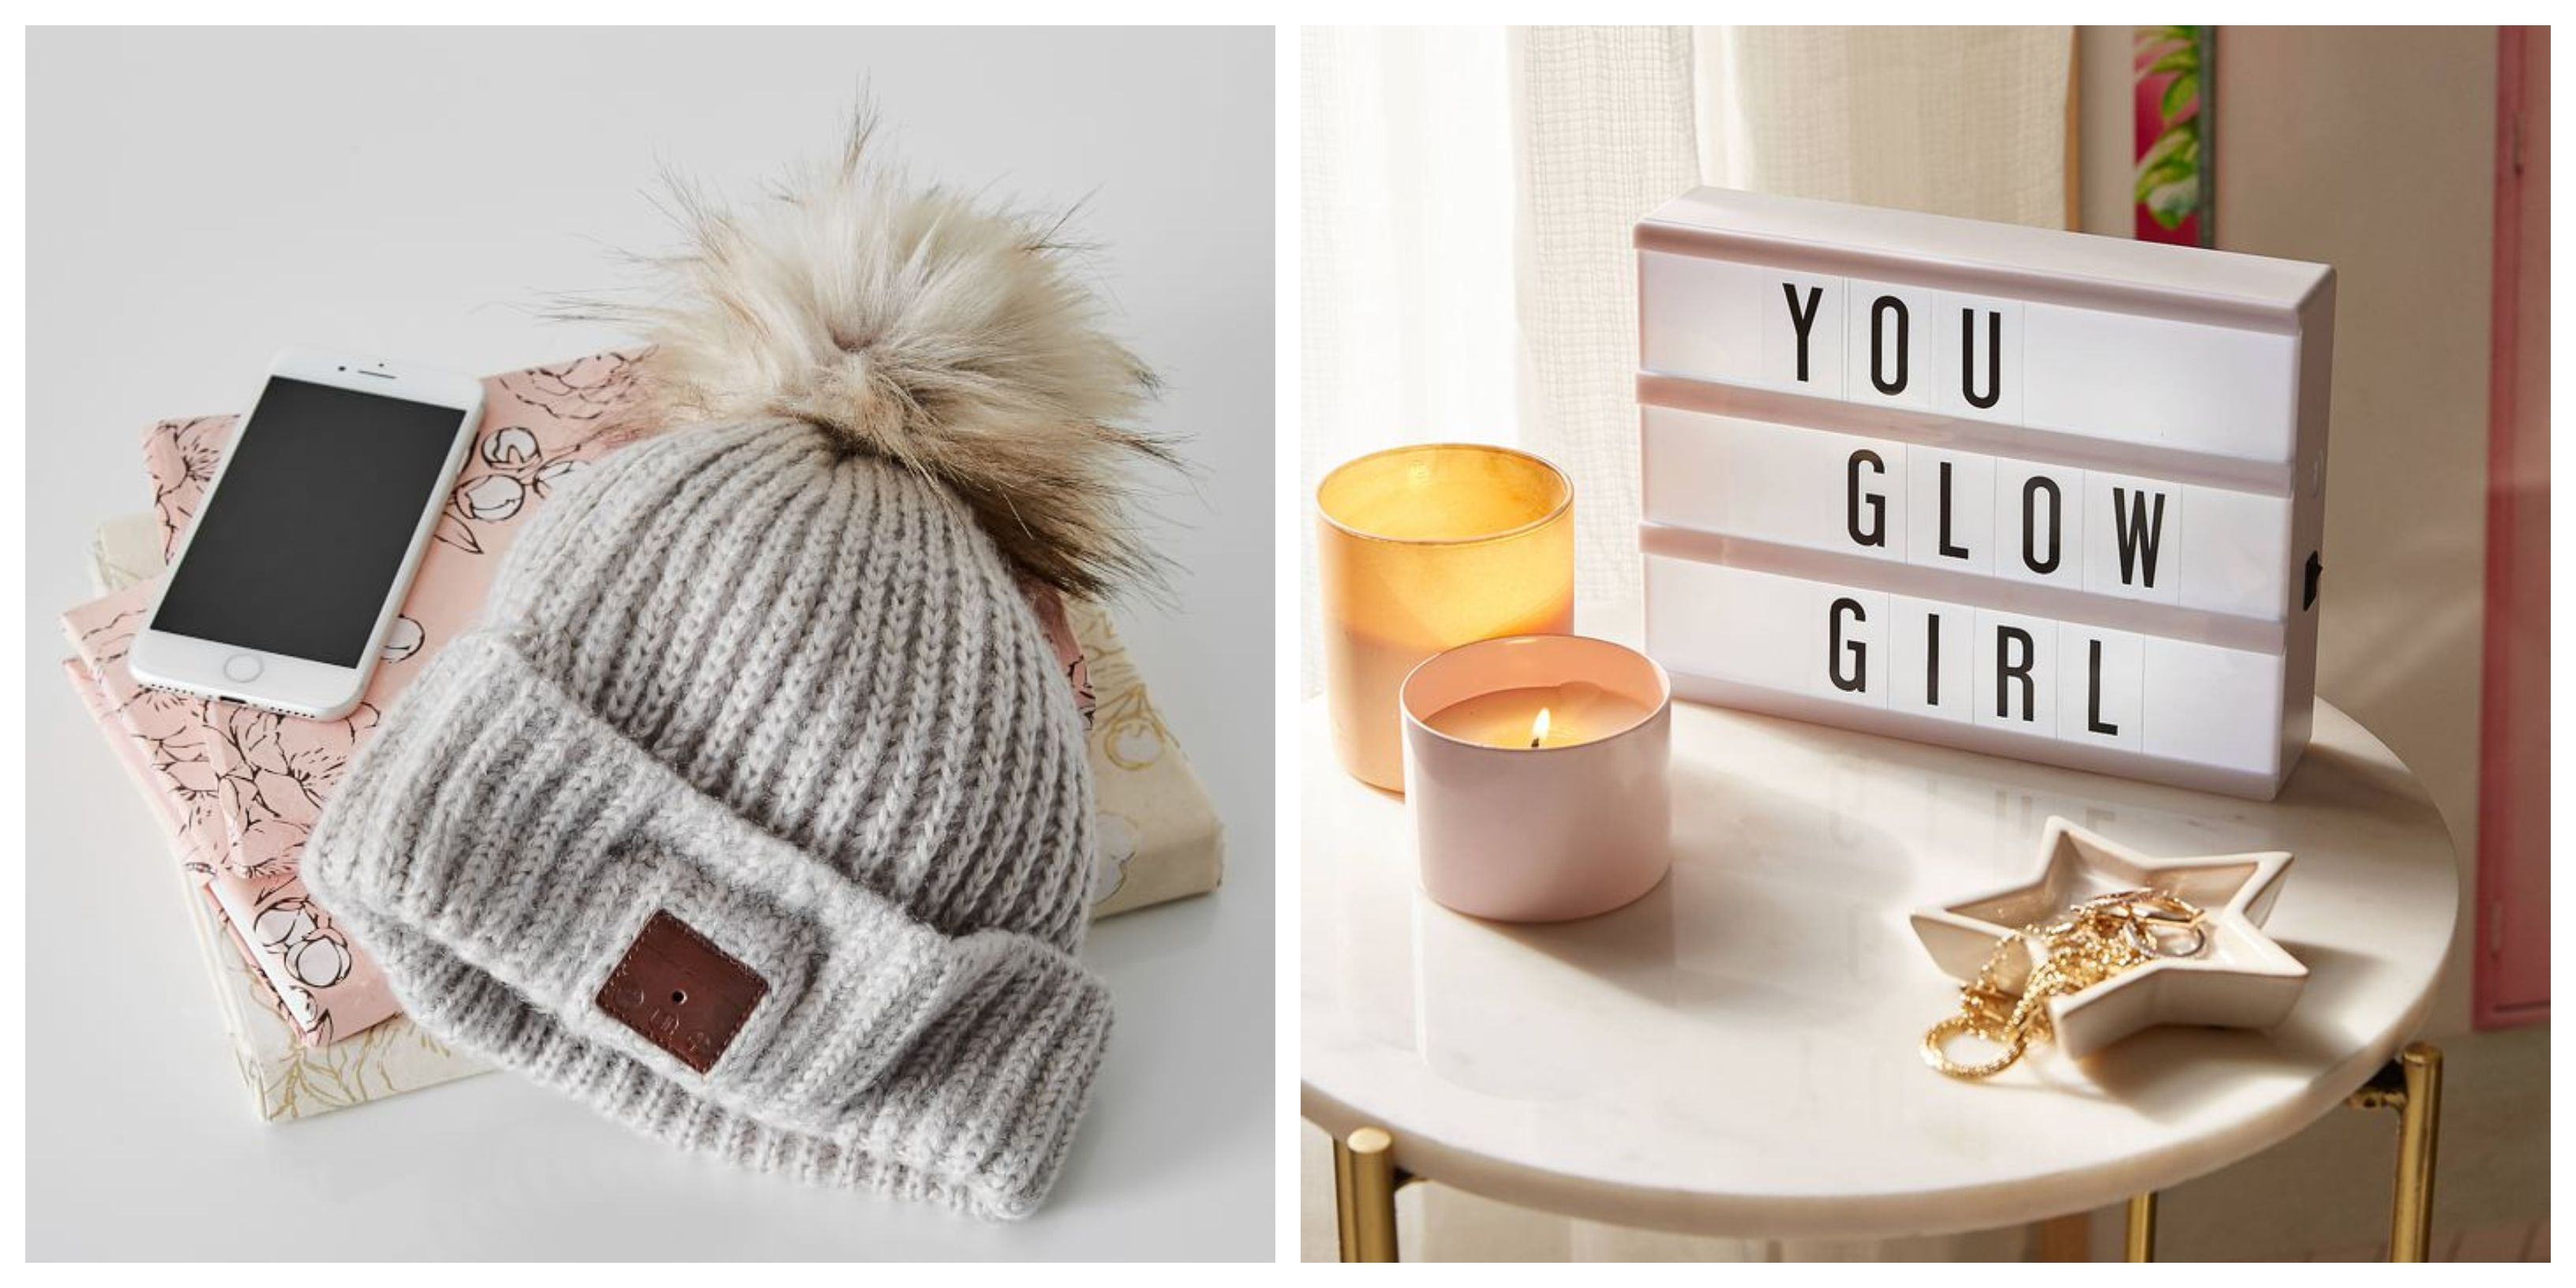 25 Best Gifts for Teenage Girls - Top Christmas Gift Ideas for Teens